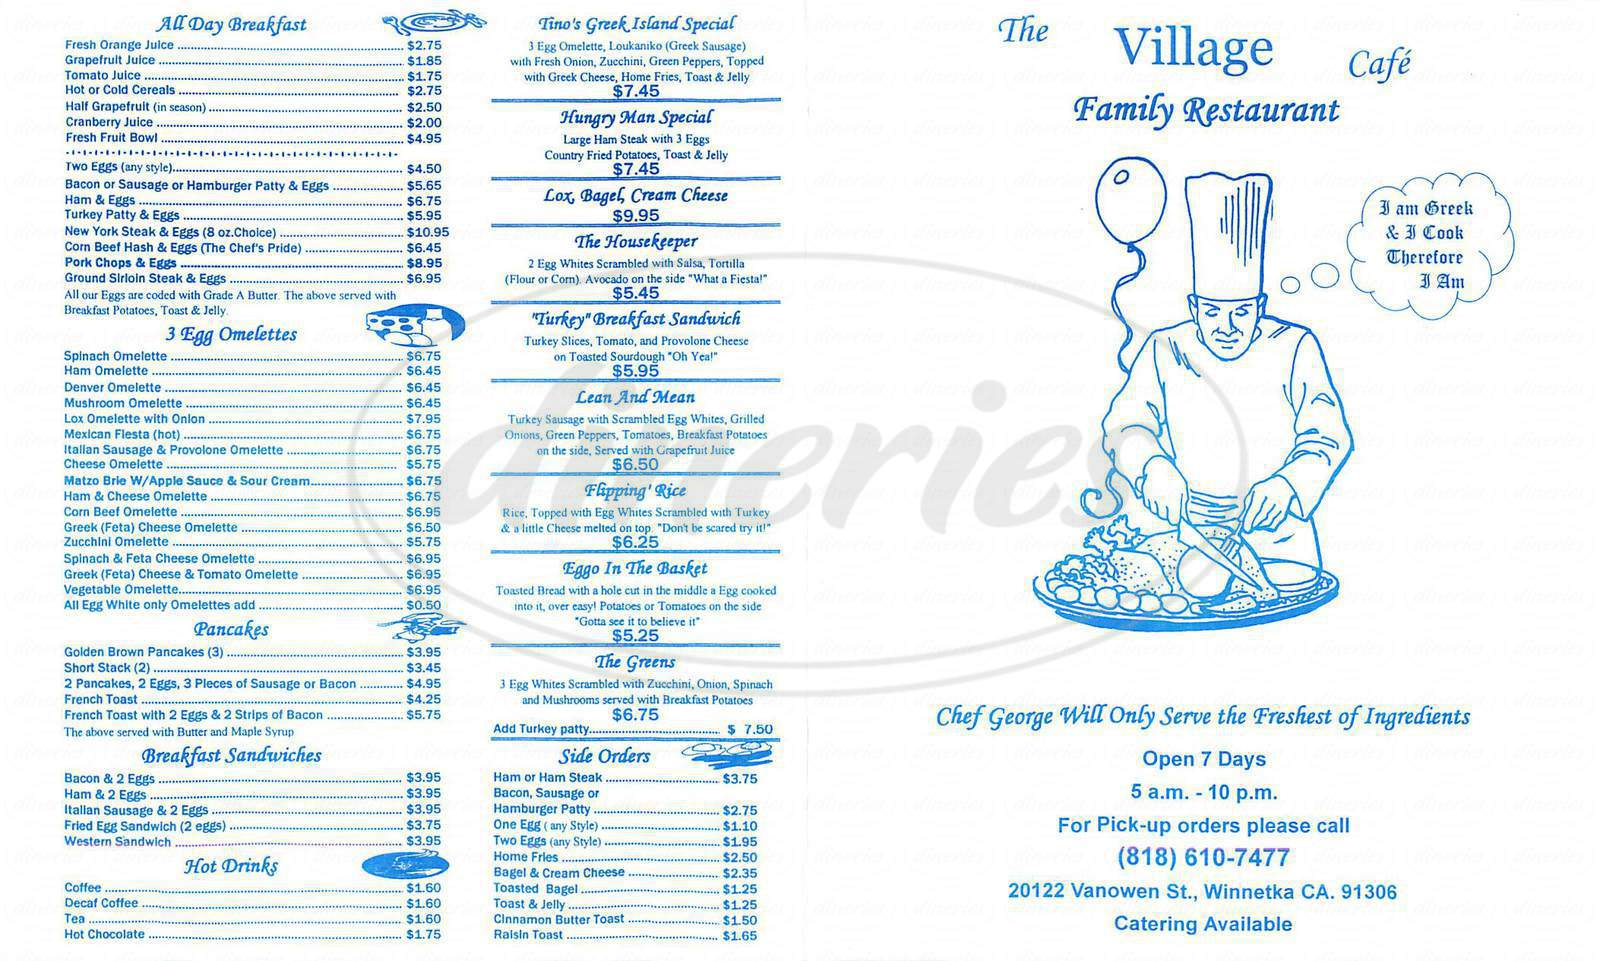 menu for The Village Cafe